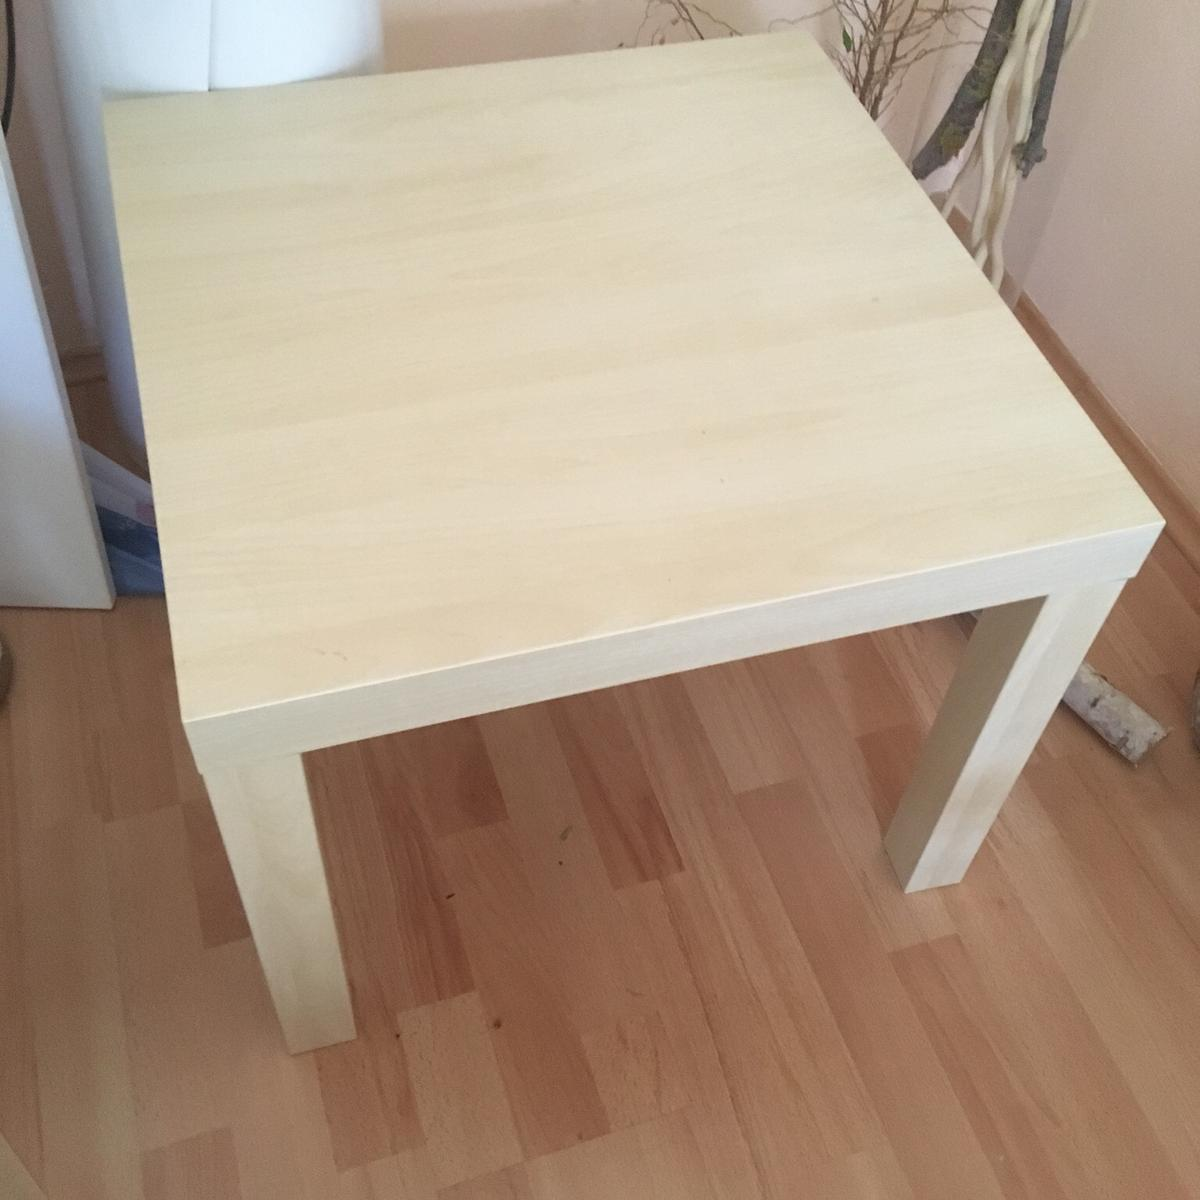 Ikea Pello Sessel 2 Stuck 1 Kleiner Tisch In 6020